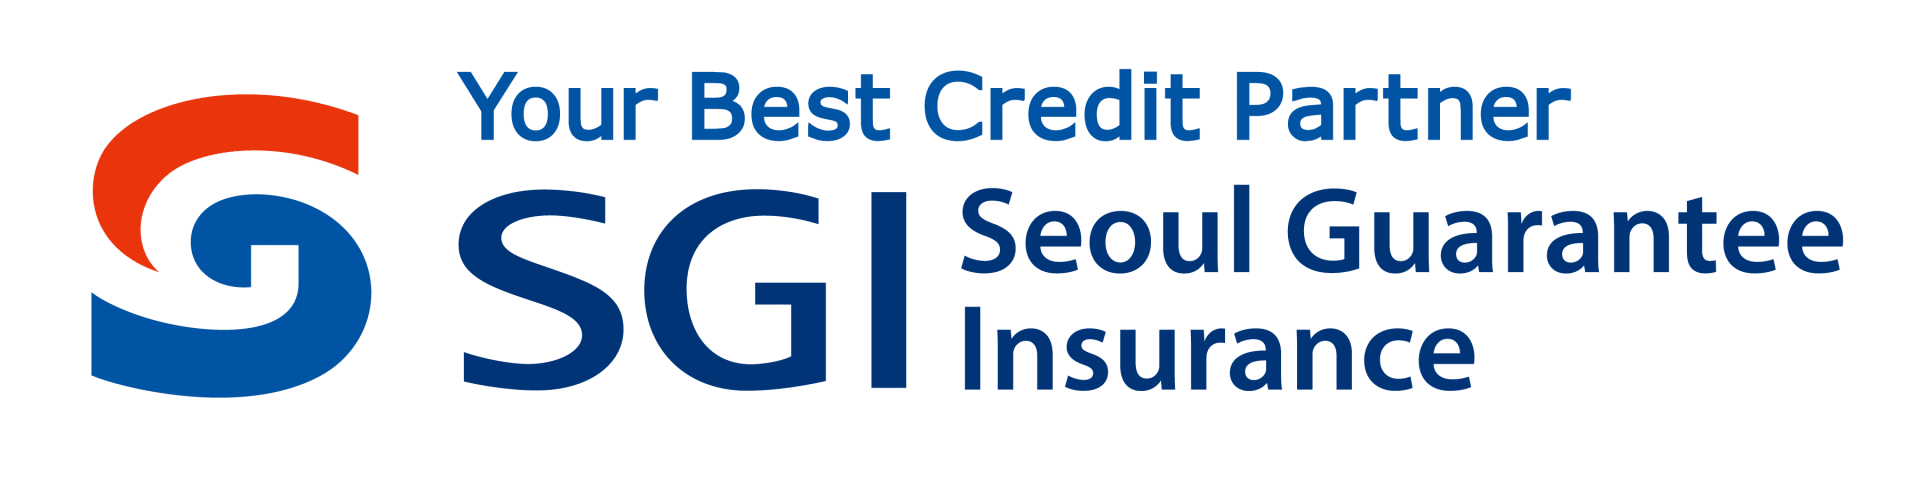 Seoul Guarantee Insurance Company